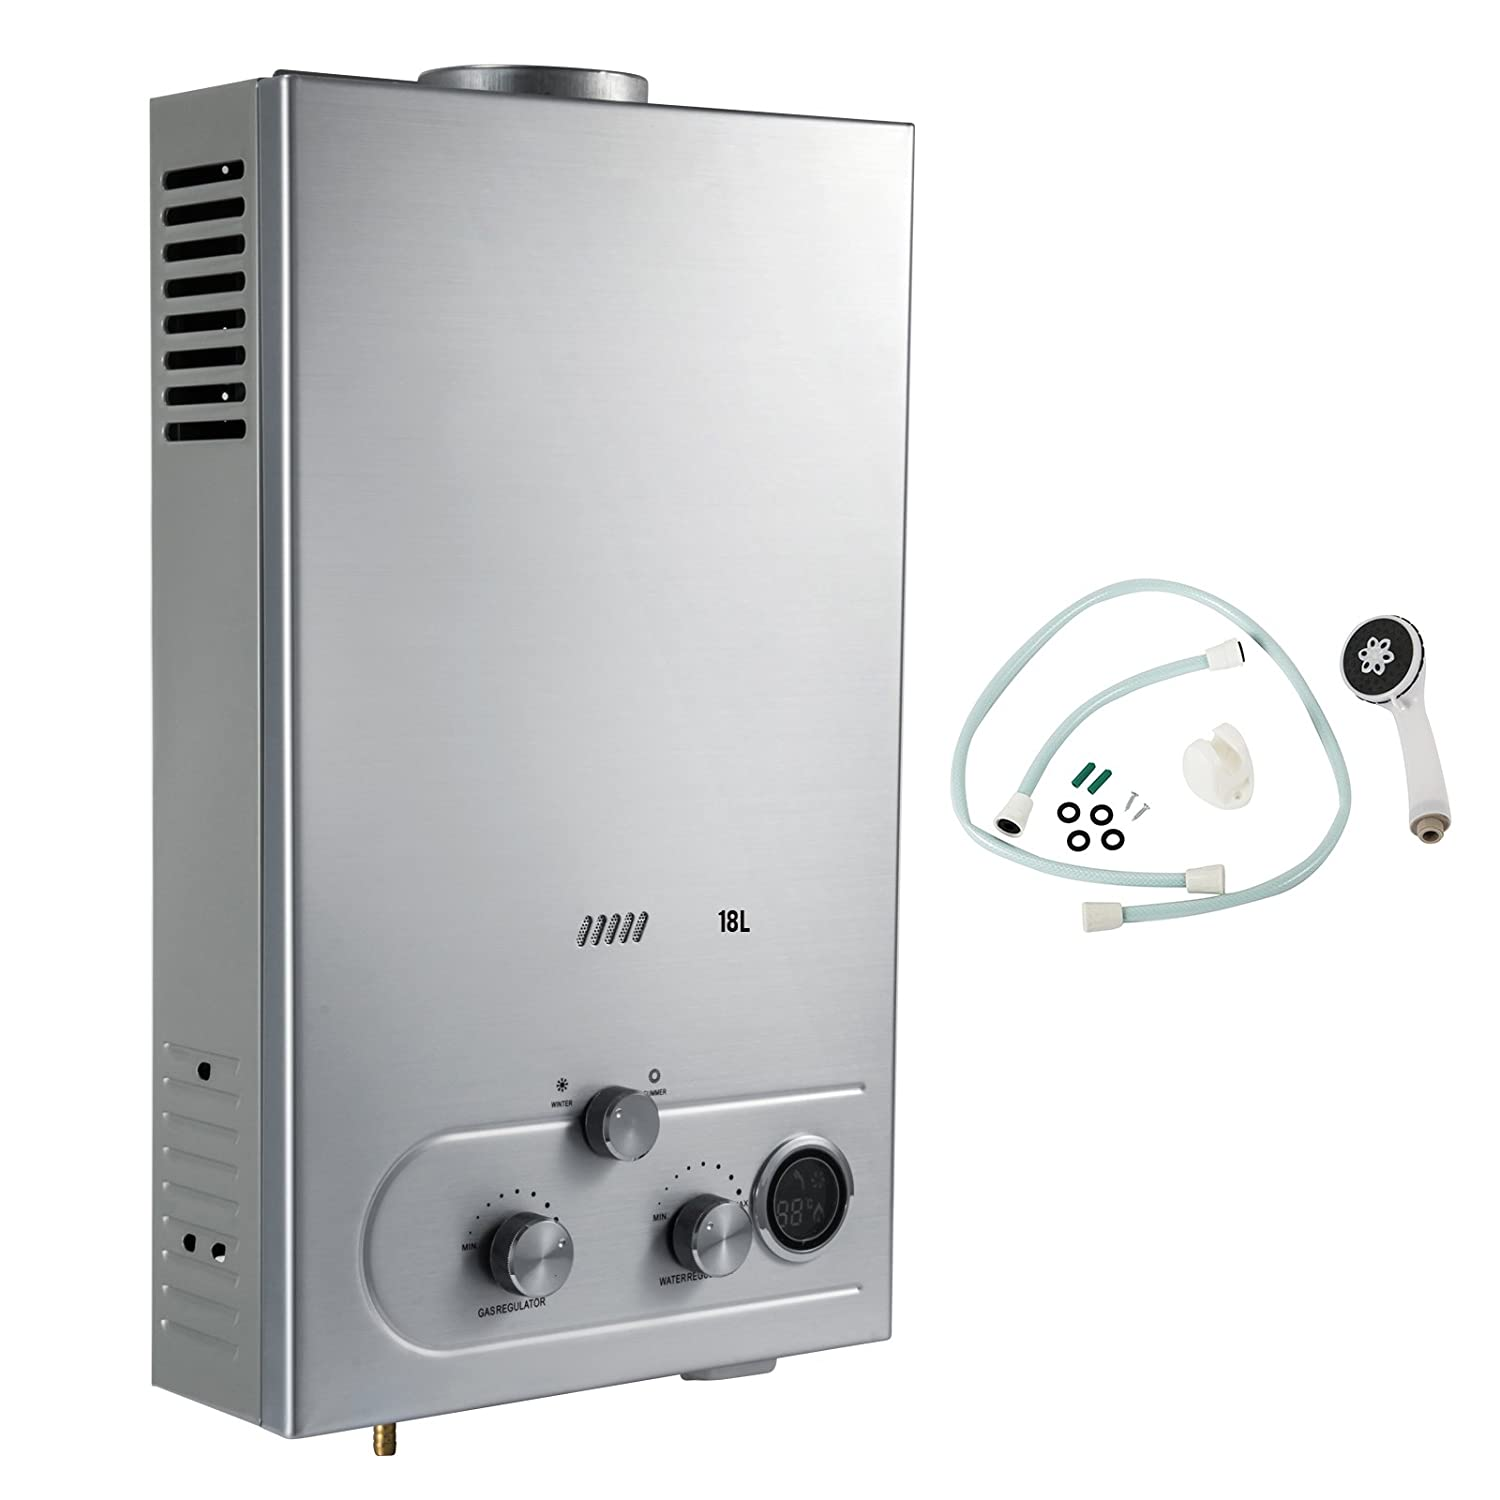 Water heaters amazon vevor propane gas tankless water heater 18l 45gmp propane water heater lpg liquid propane gas fandeluxe Image collections